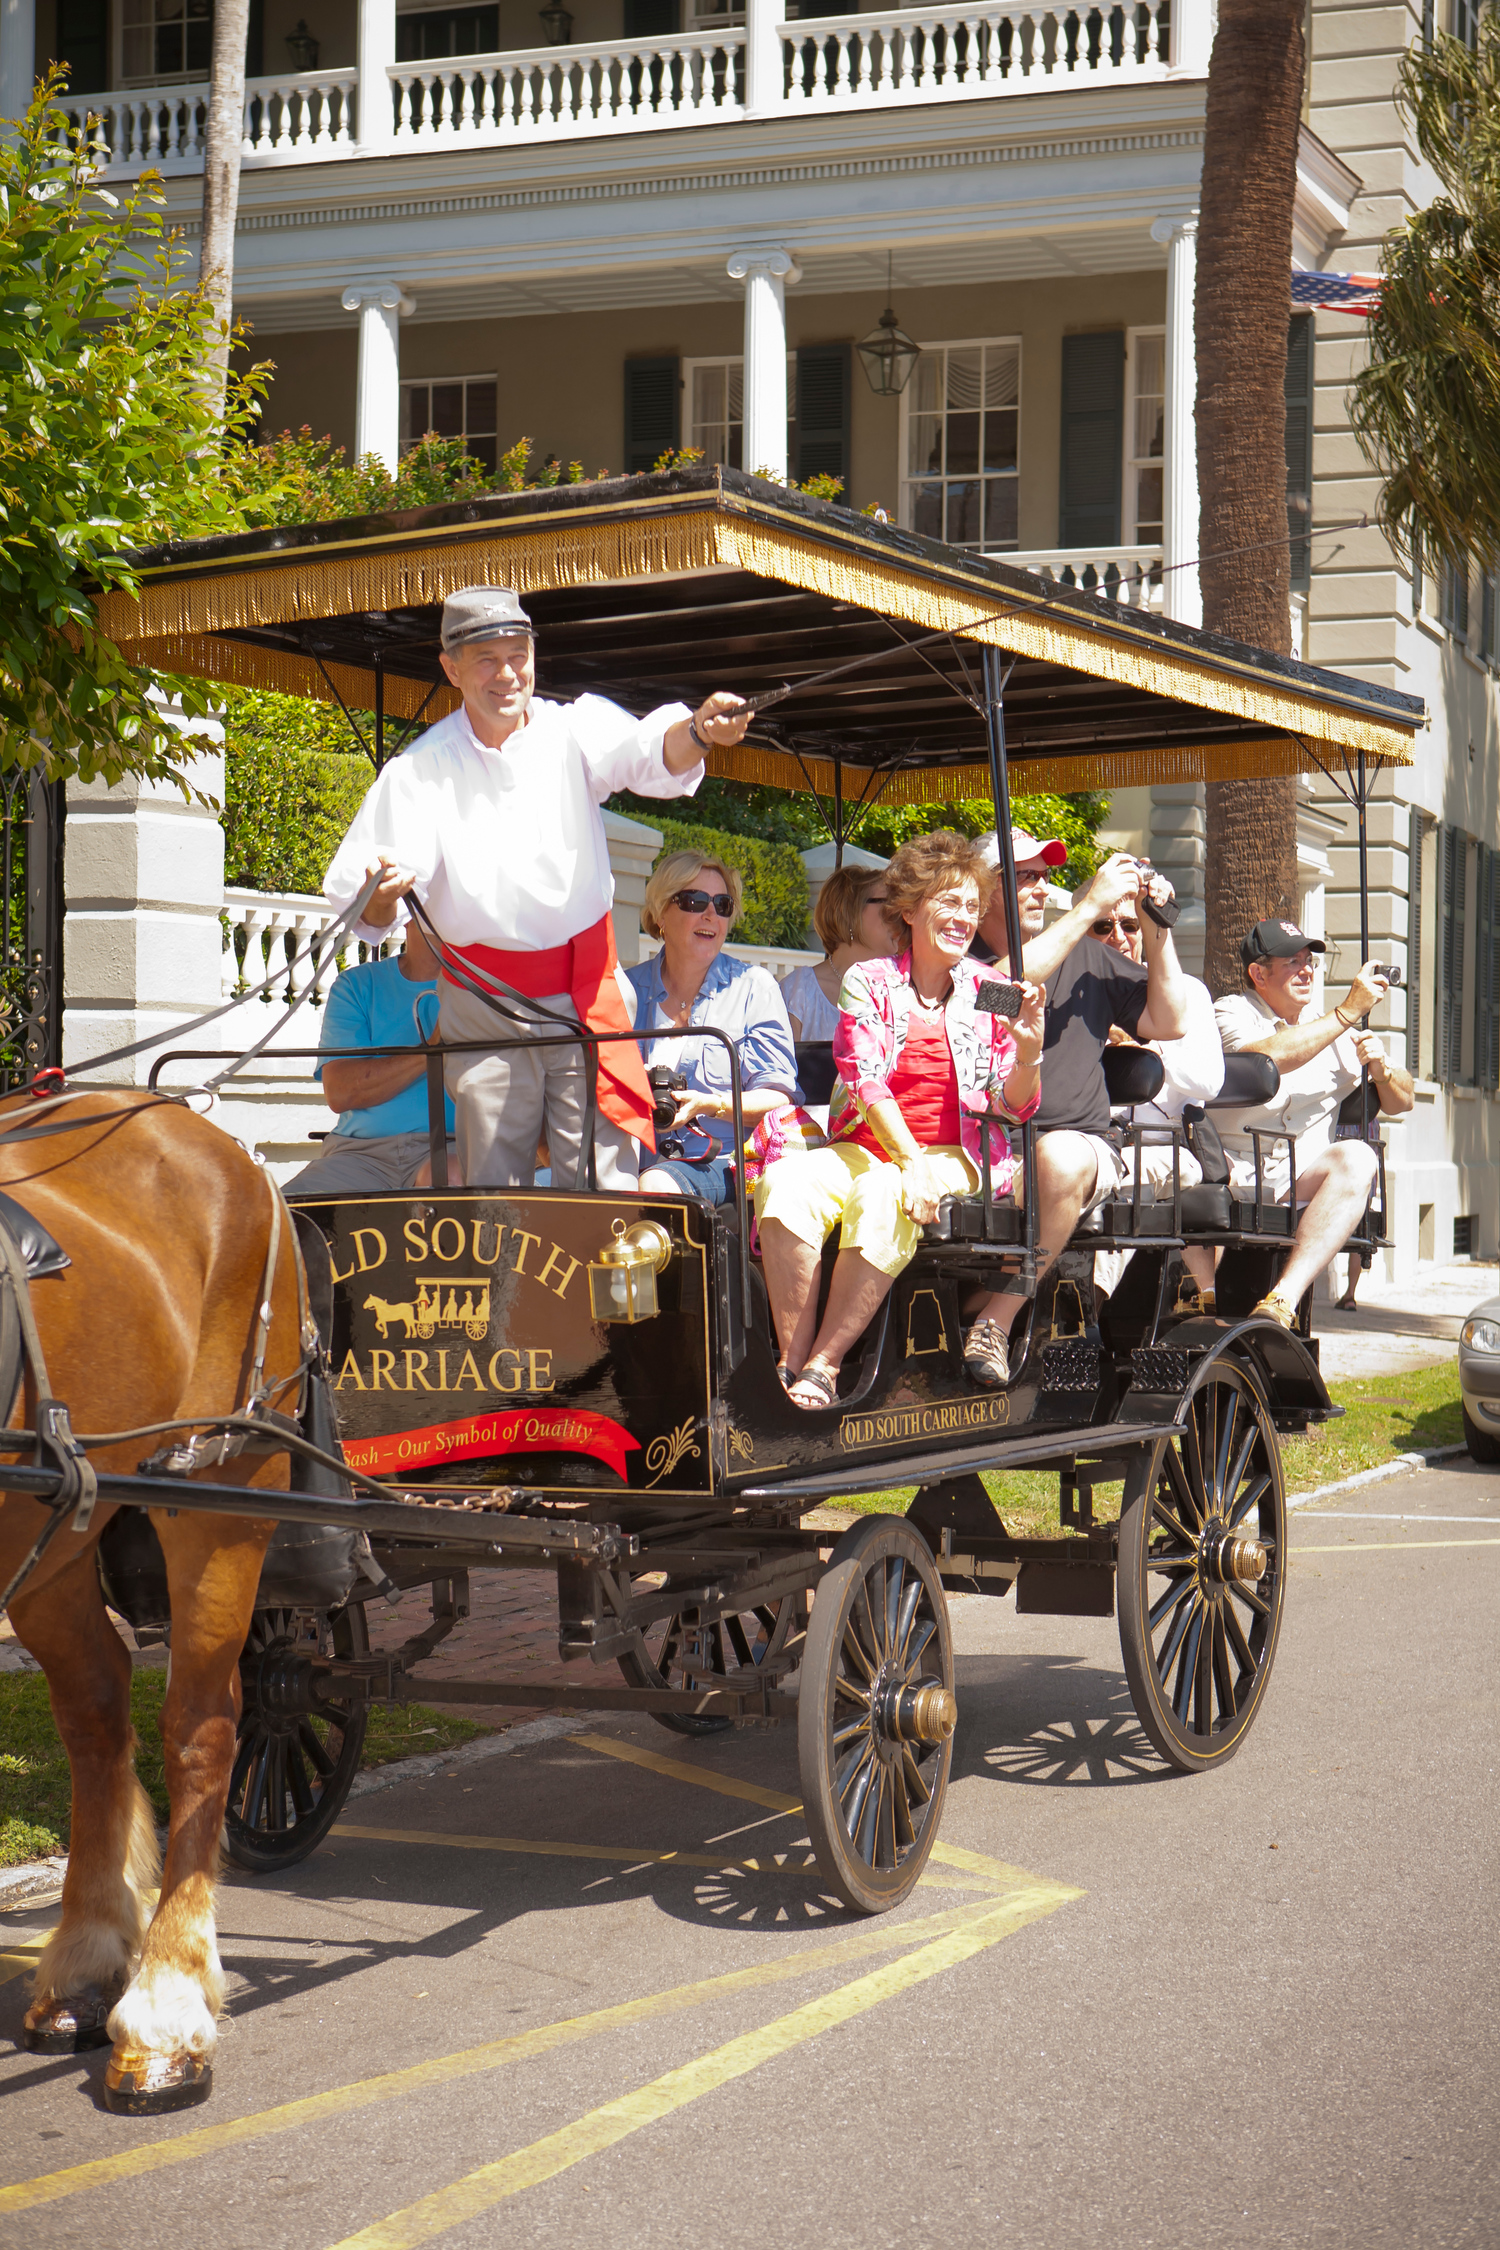 This is a picture of the Old South Carriage Company with a horse drawn carriage and driver in the downtown Charleston, SC. There are tourists sitting in the back with cameras taking pictures.